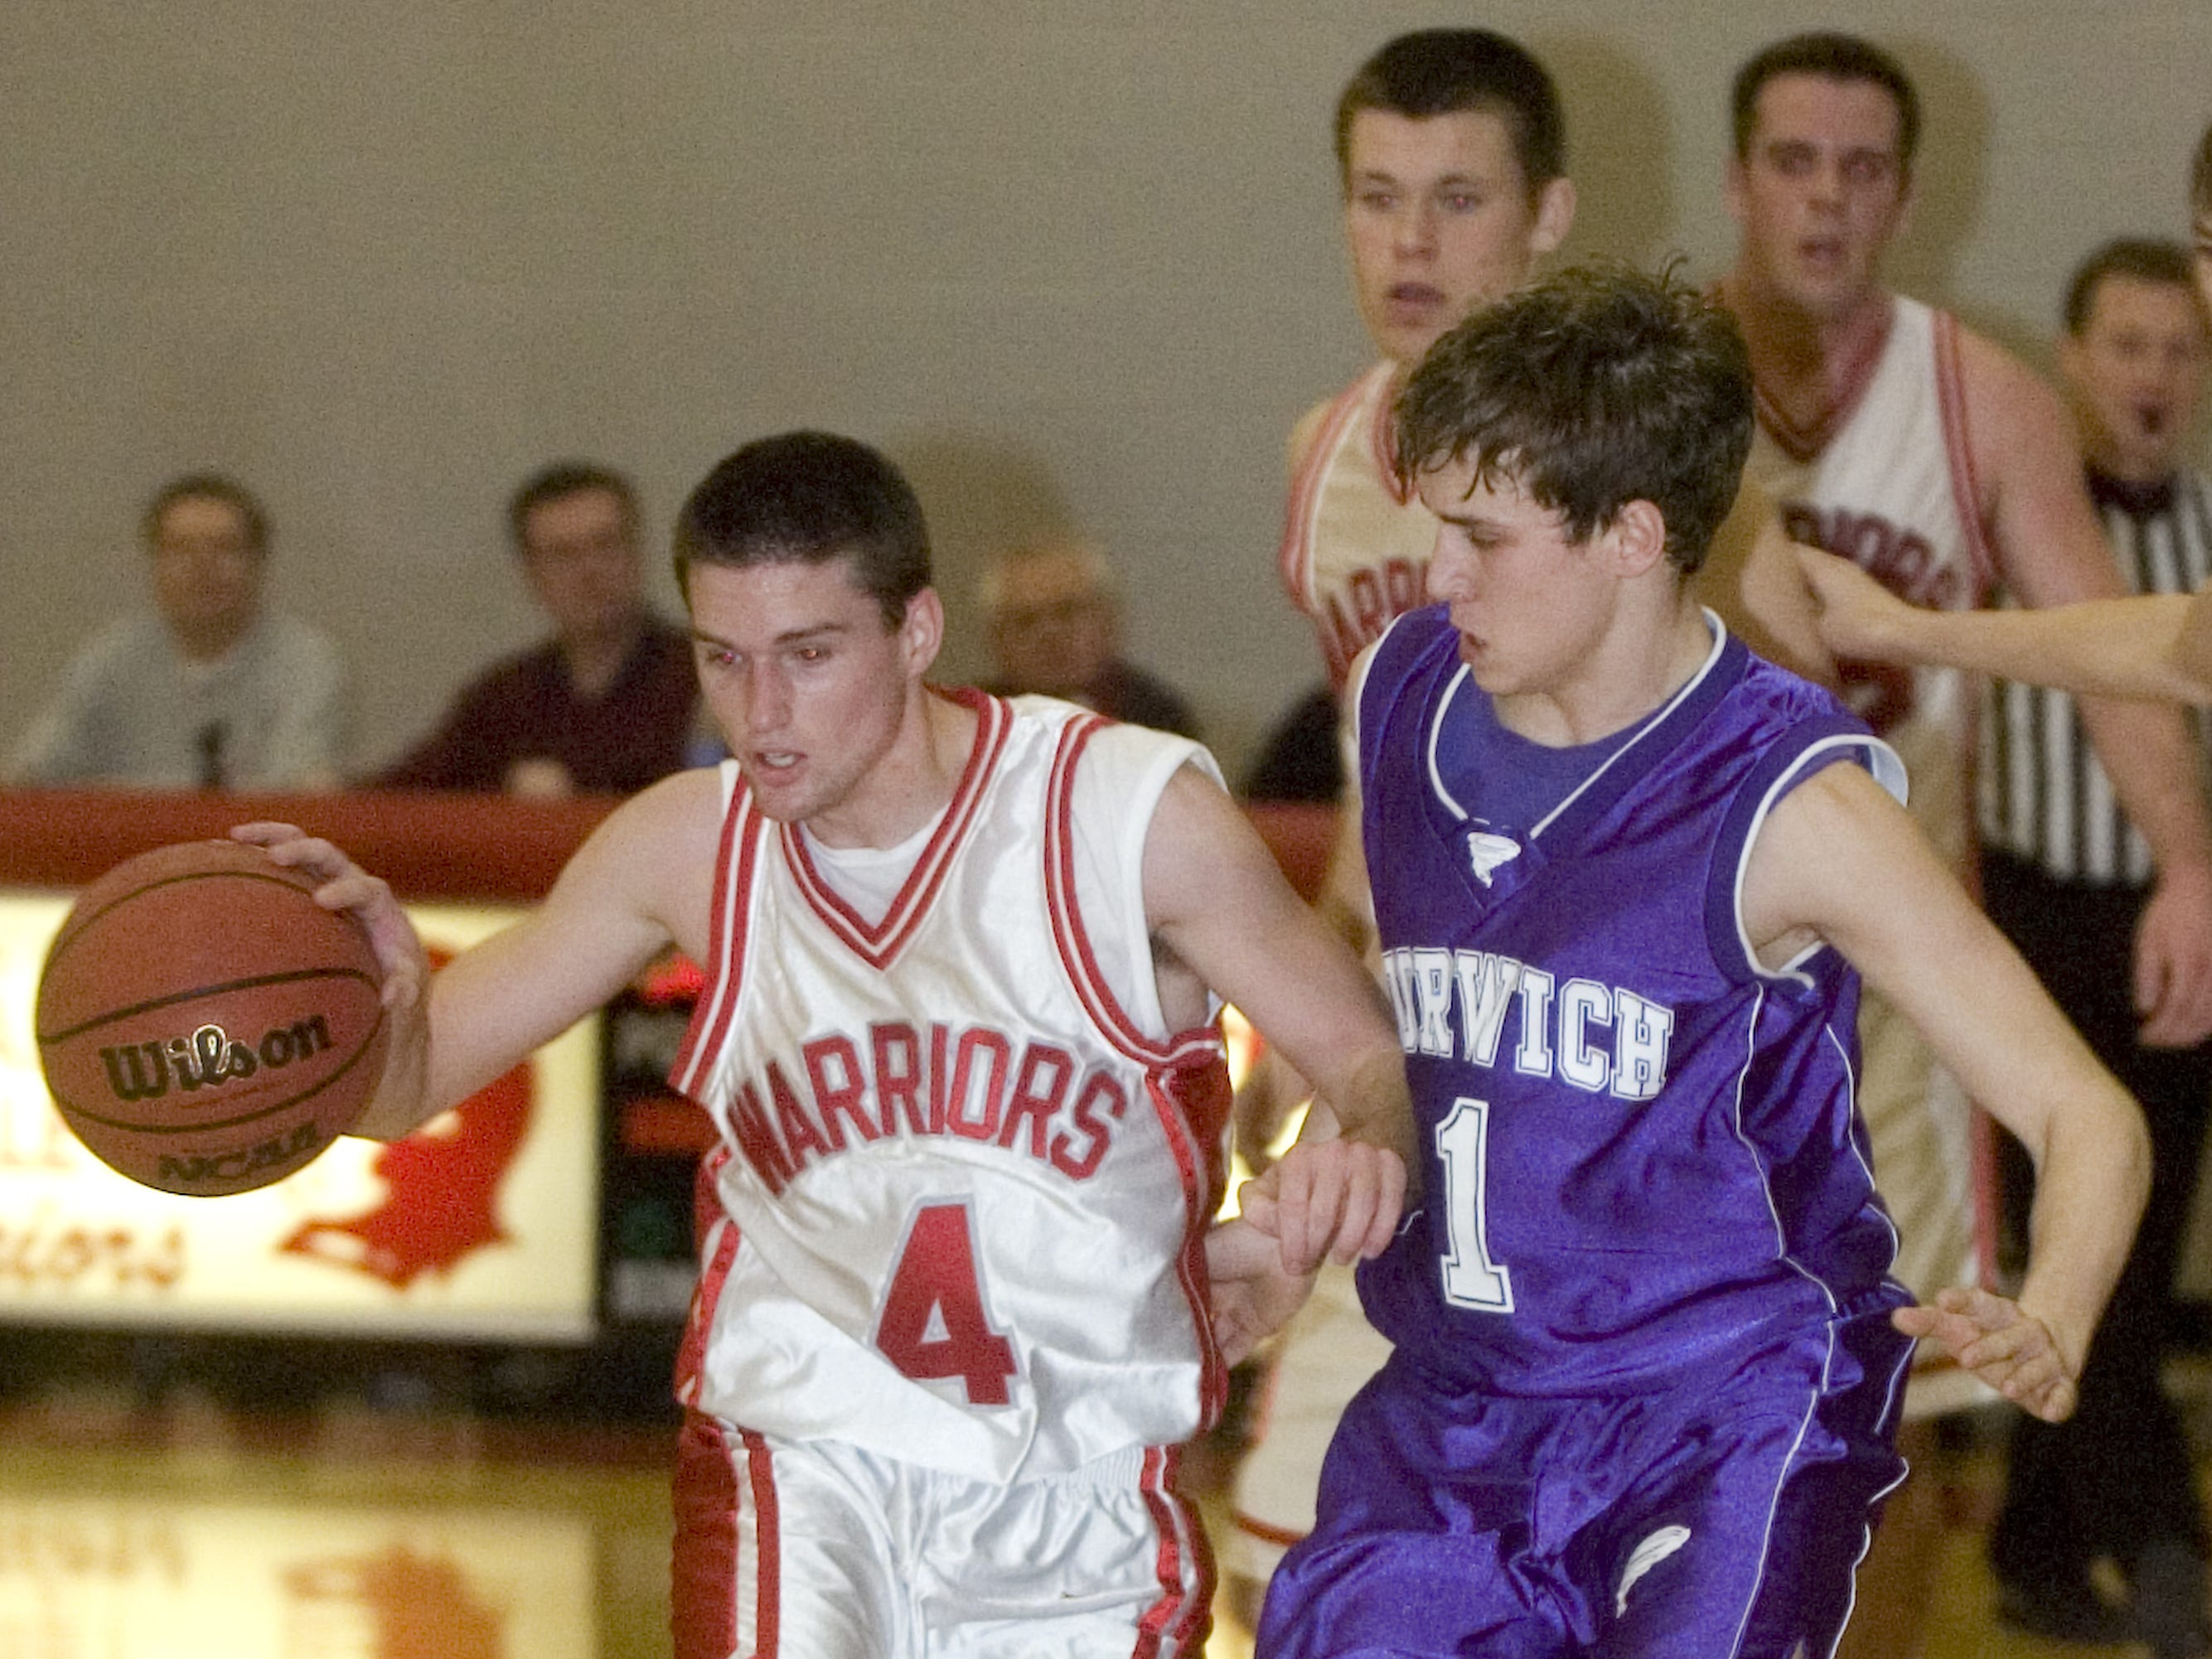 2010: Norwich's Casey Edwards, right, guards Chenango Valley's Andy Fox in the second quarter of Friday's game at CV.